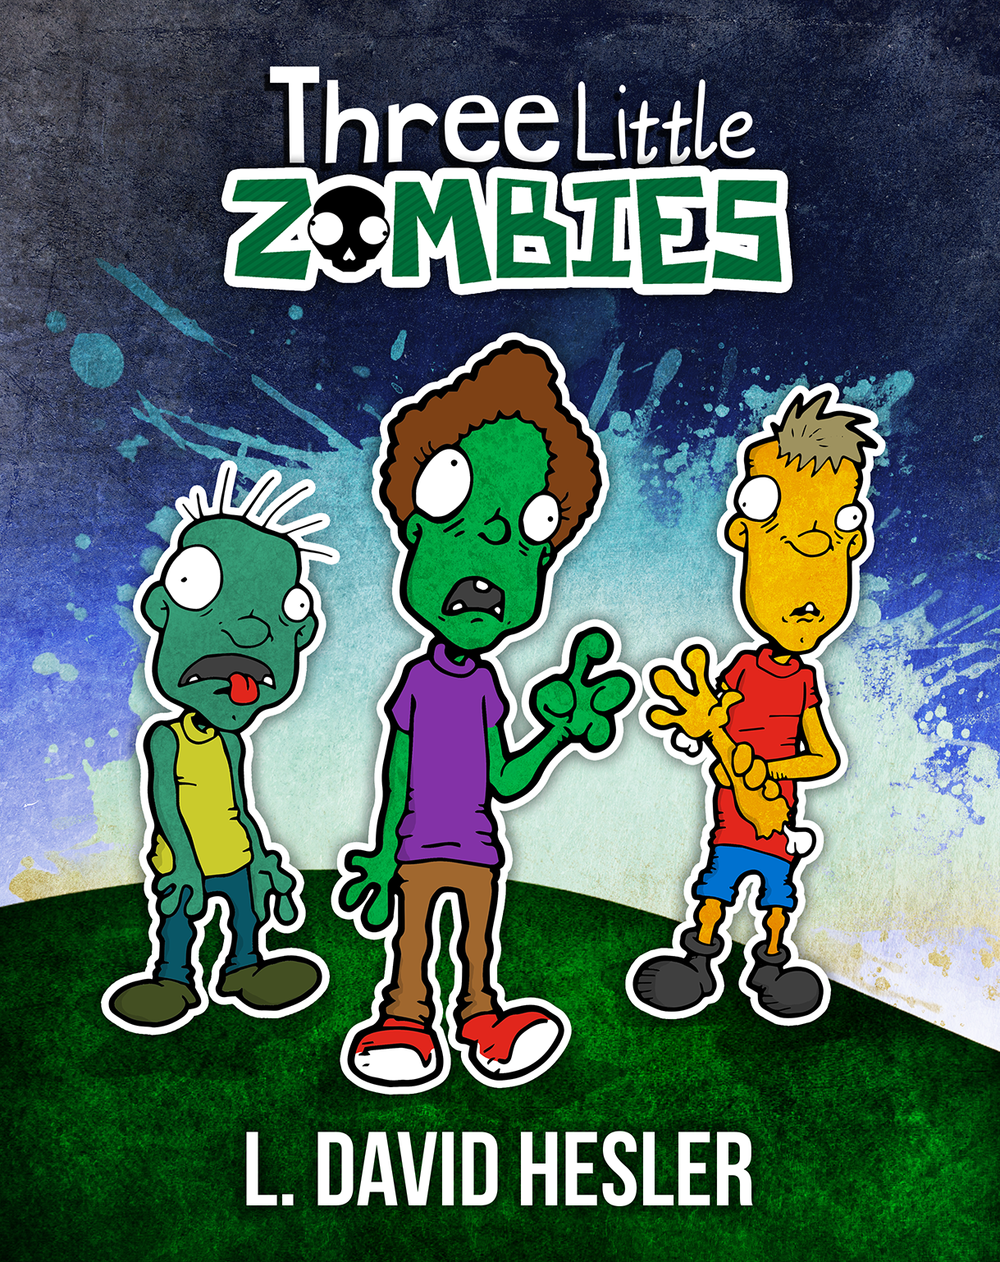 THREE LITTLE ZOMBIES - This is the charming tale of three undead friends who get separated while playing in the dark and dreary corners of town. Hungry, scared, and tired, all these zombies want is to find safe and comfortable places to sleep.Children and adults alike will happily devour this story about the importance of inclusion and the power of making friends.Purchase for iBook, Nook, Kobo, & other ebook platforms.